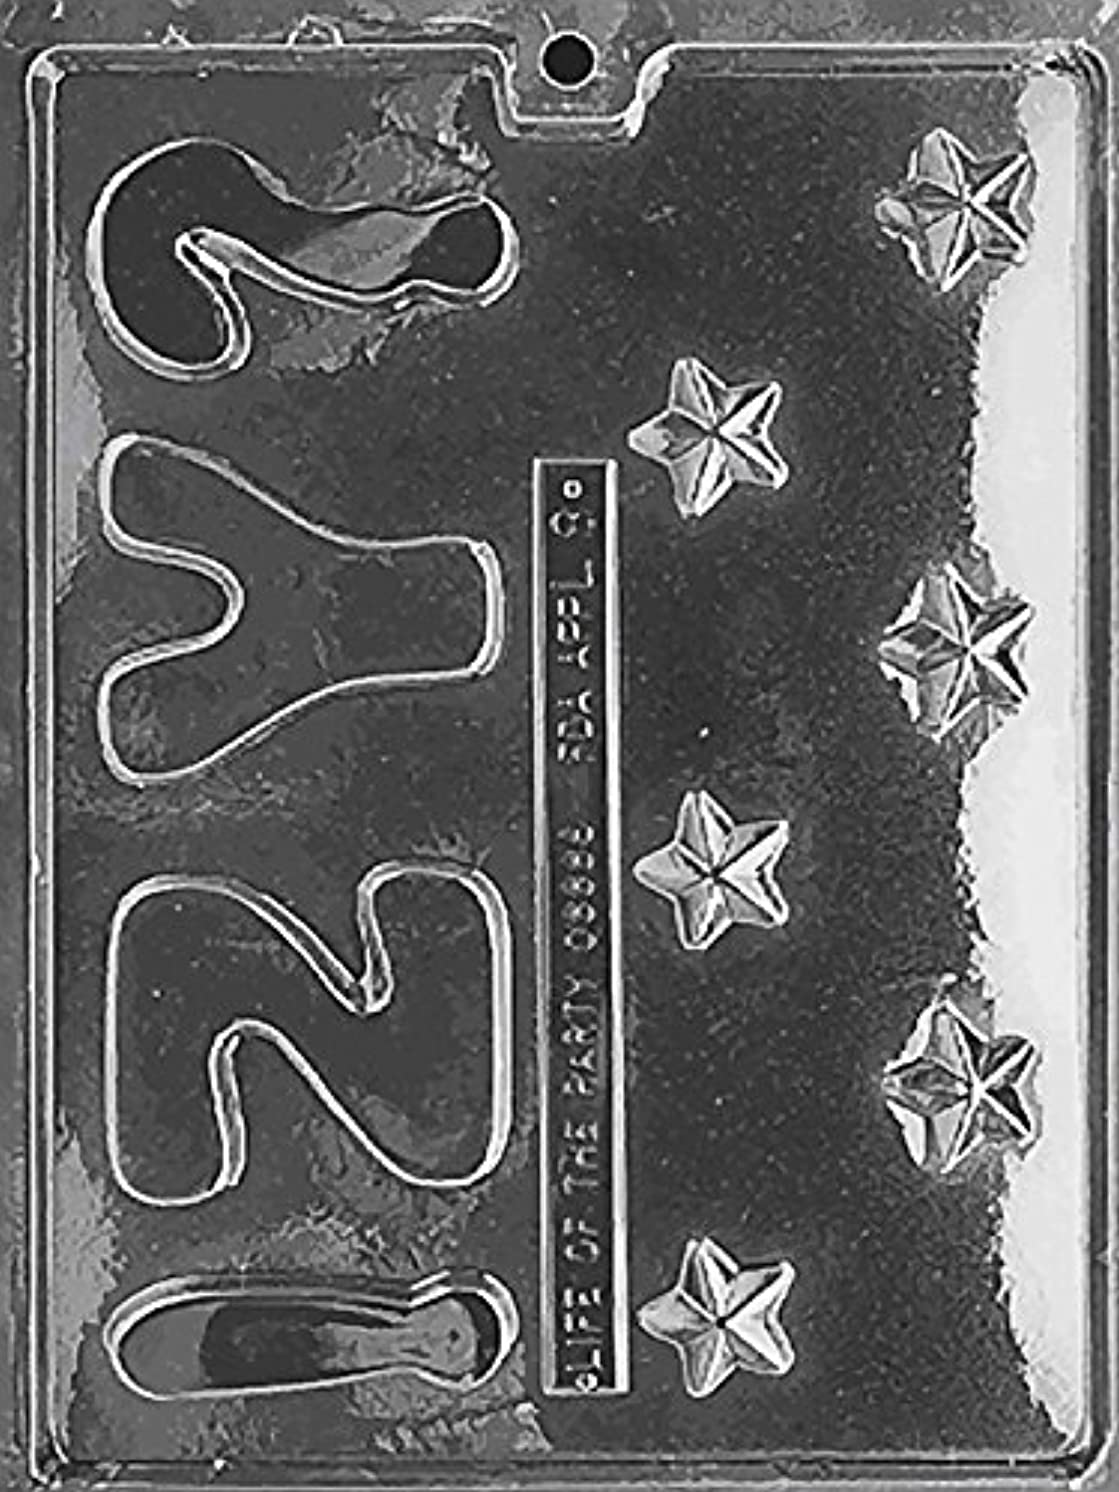 CybrTrayd L008 Letters and Numbers Soap Mold, Y, Z, Stars with Exclusive Cybrtrayd Copyrighted Soap Molding Instructions